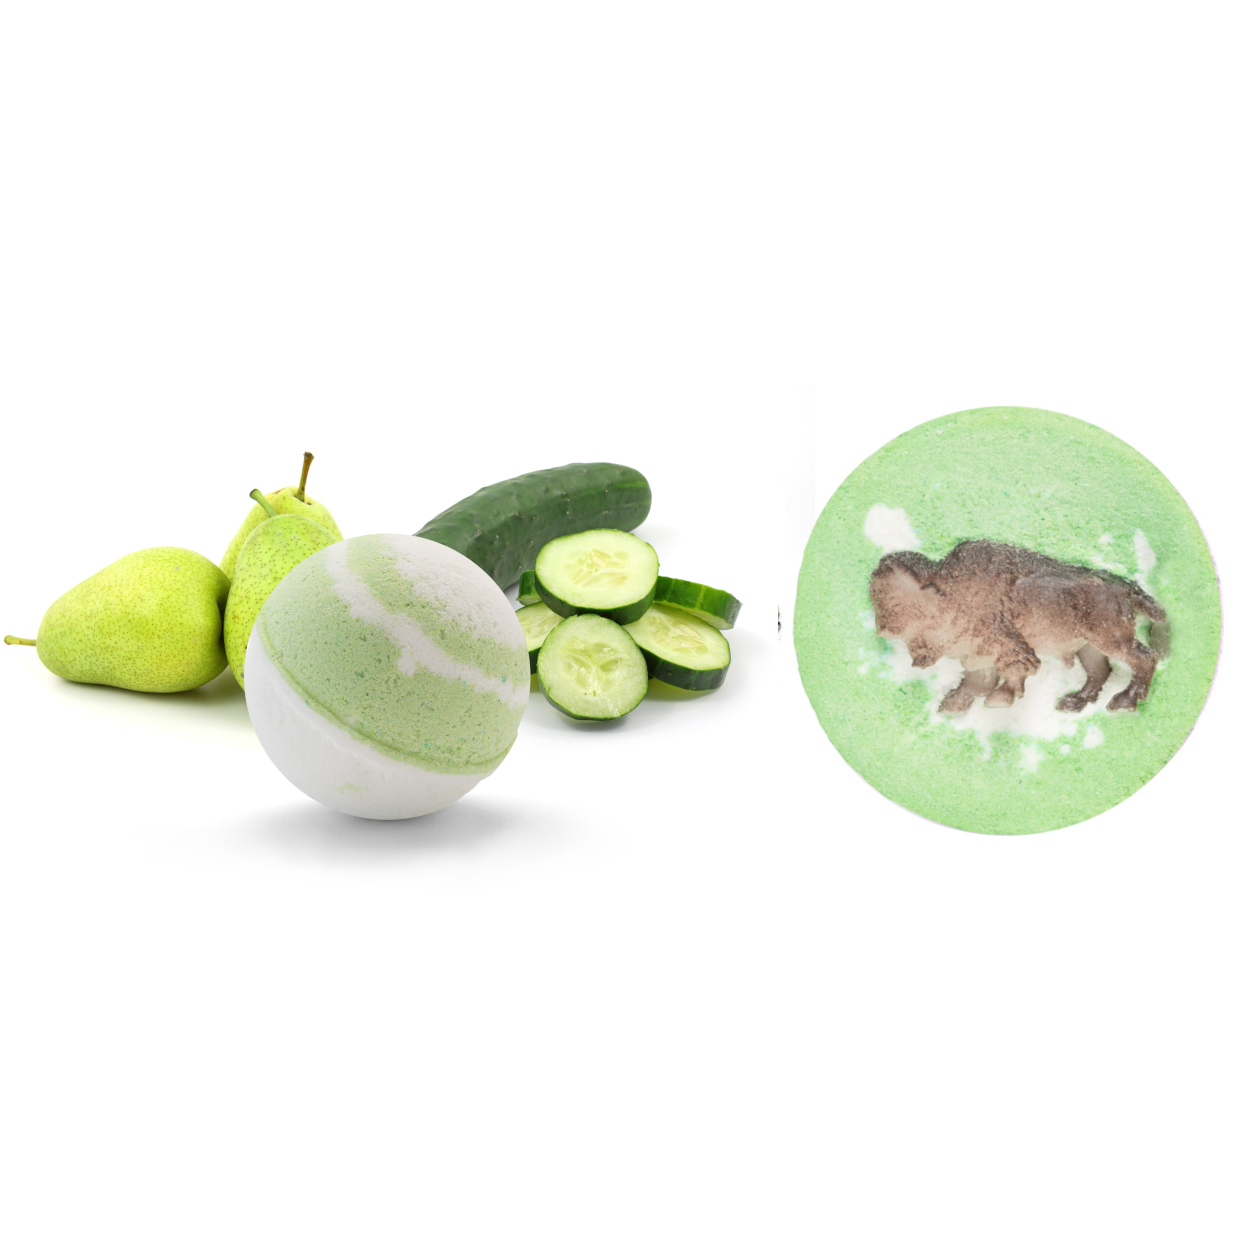 cucumber-pear-buffalo